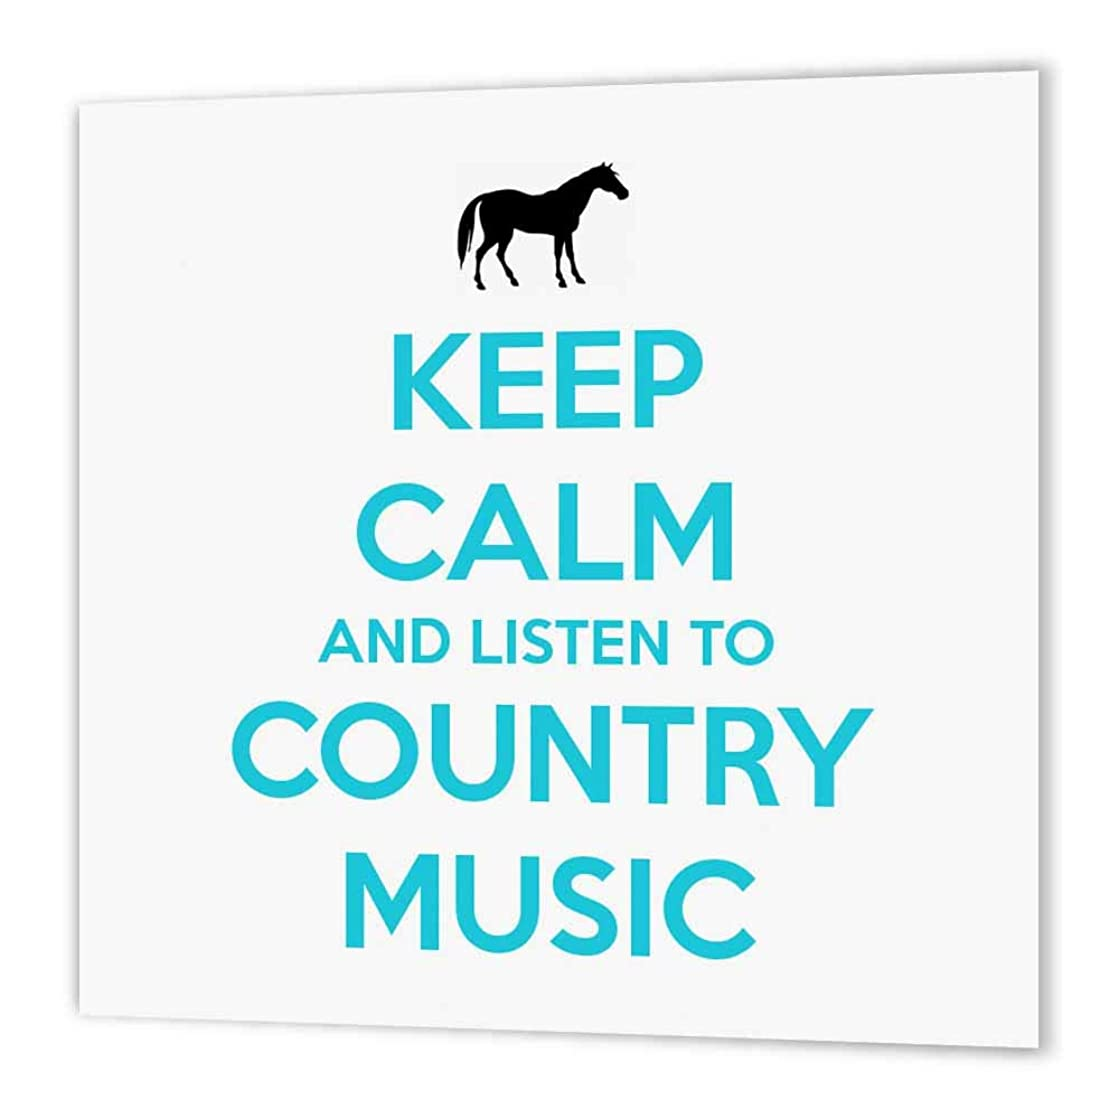 3dRose ht_173401_3 Keep Calm & Listen to Country Music White & Turquoise Horse Iron on Heat Transfer Paper for White Material, 10 by 10